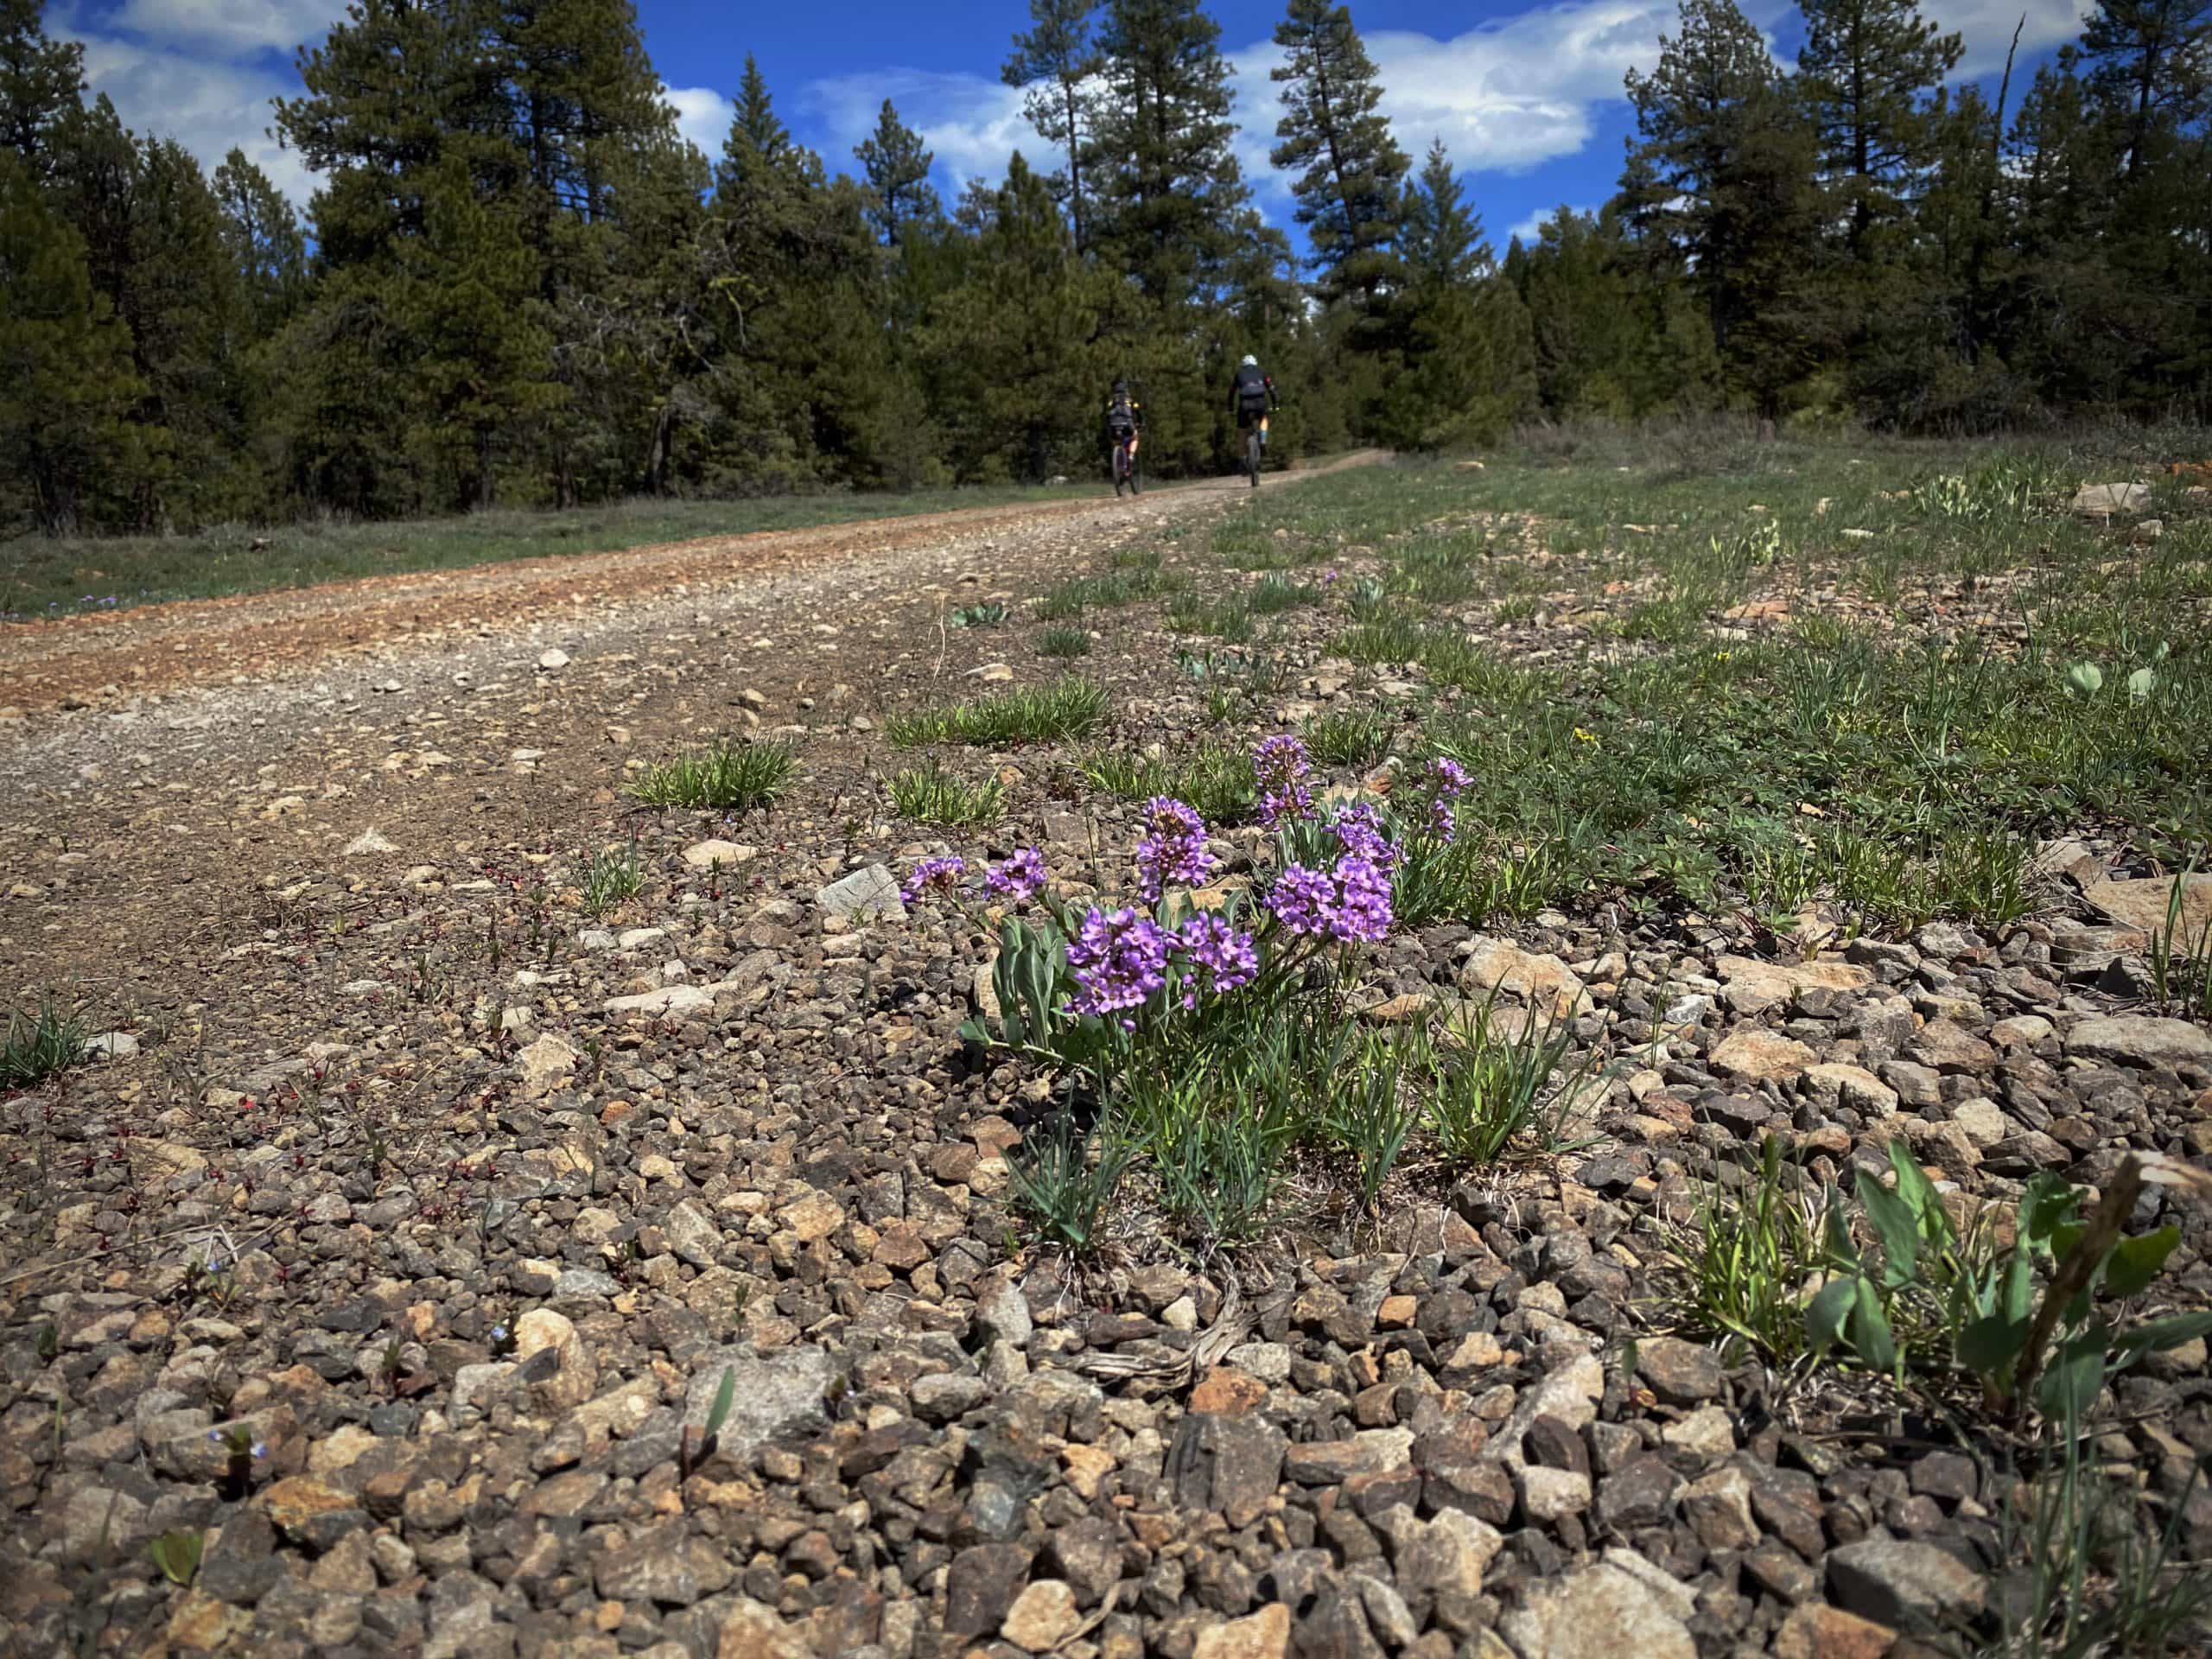 Cyclists on gravel road with flowers in foreground. Near Prineville, OR.